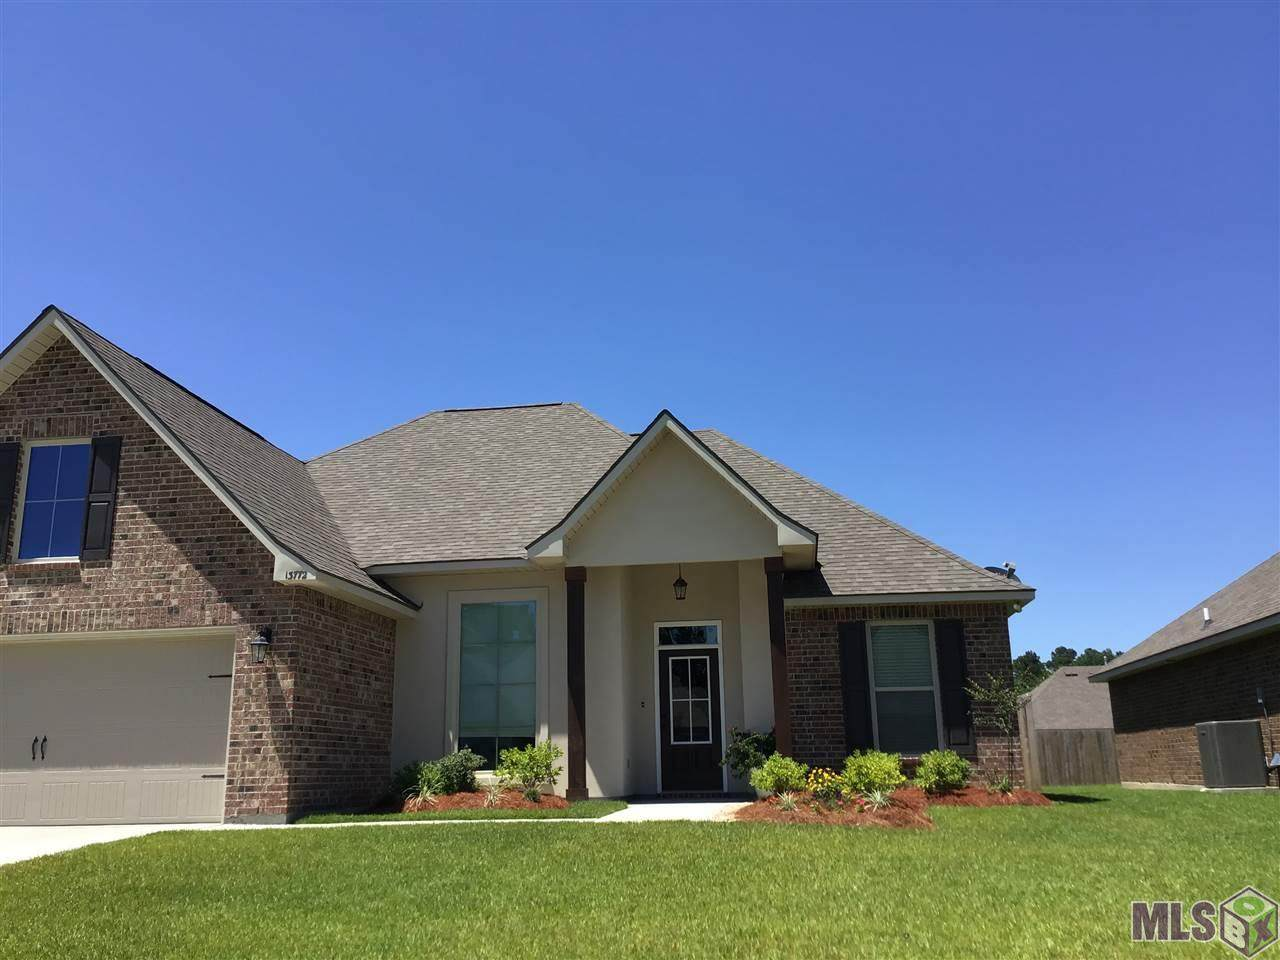 13772 Fig Dr - Photo 1